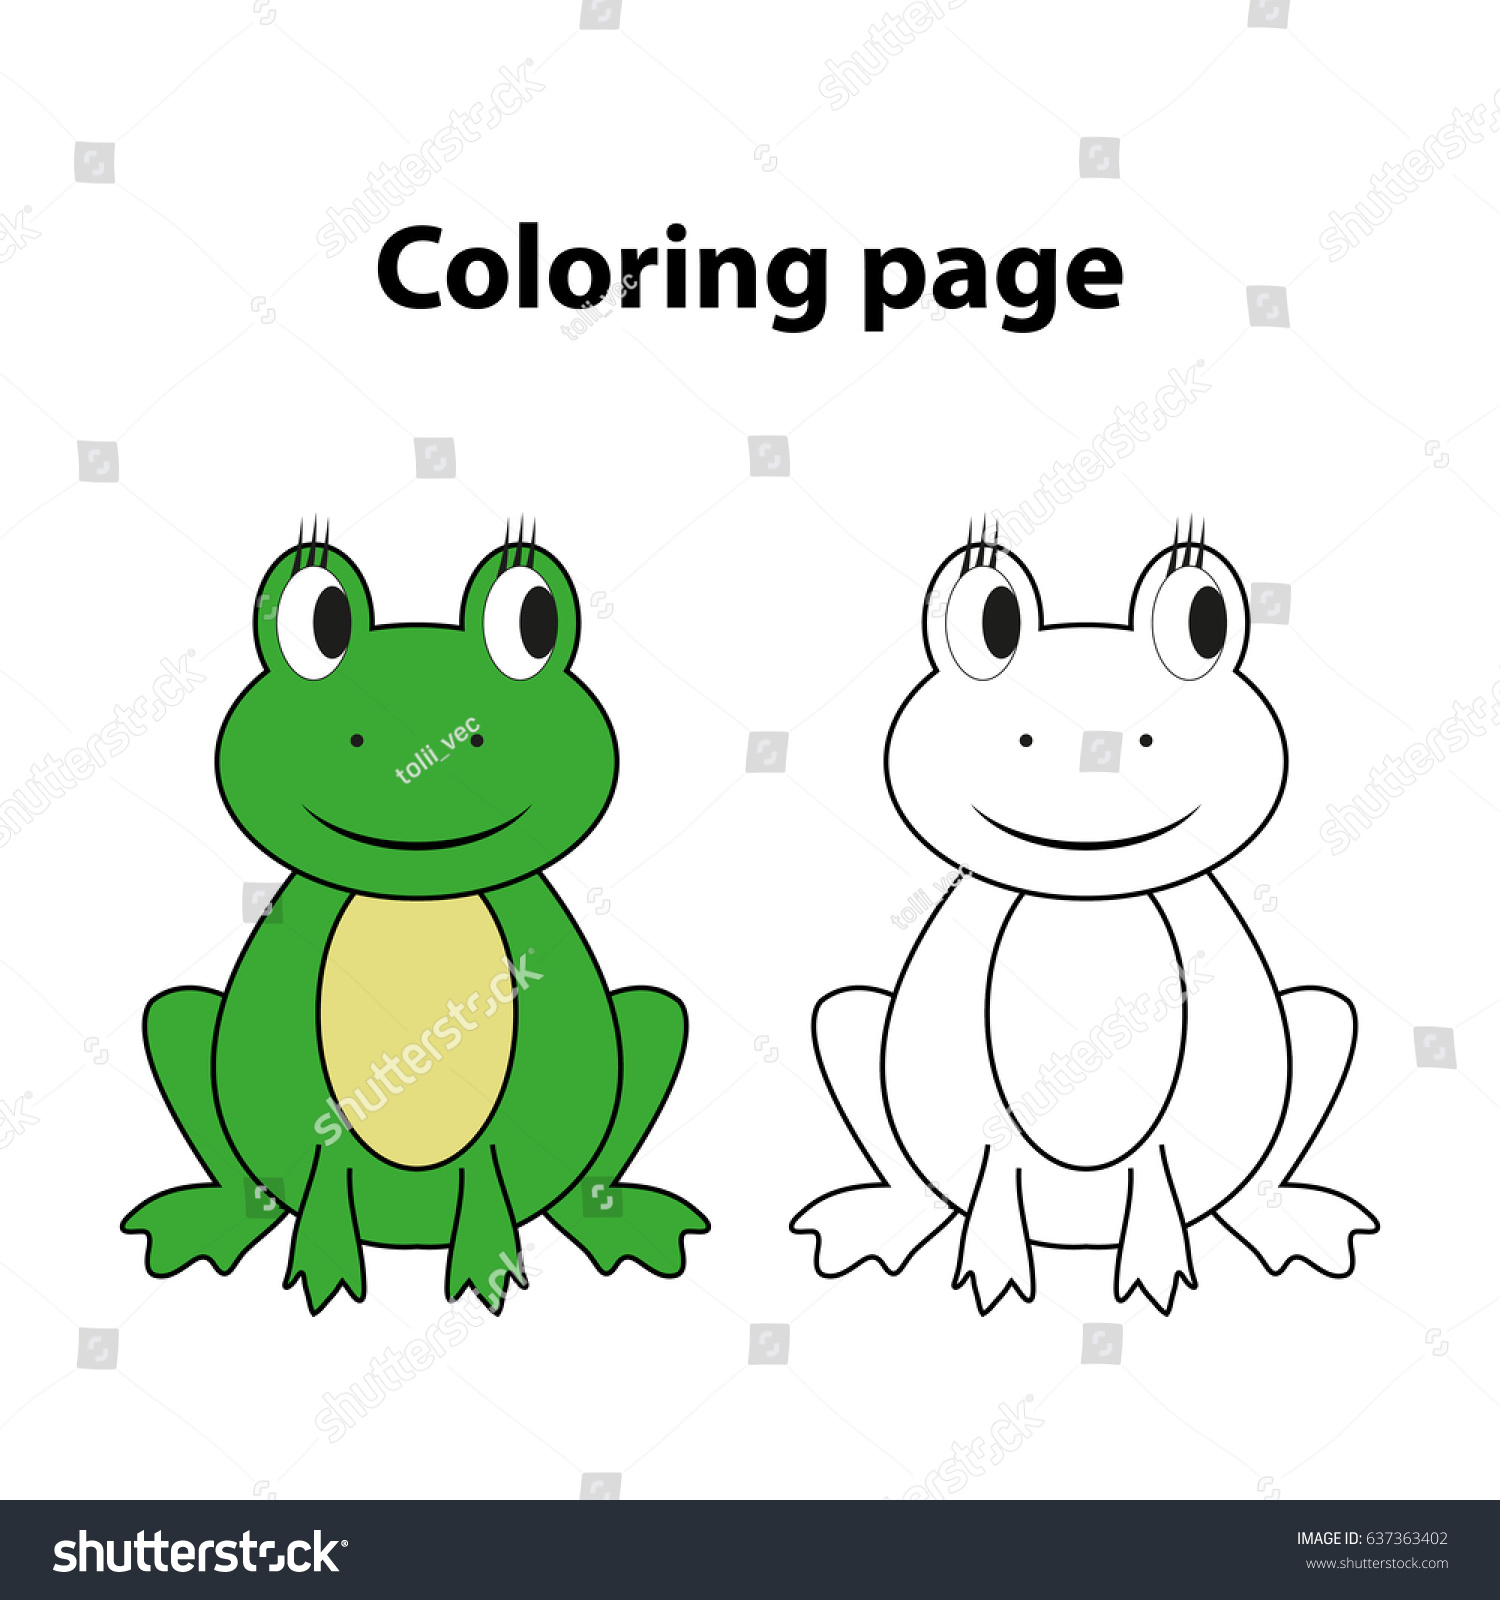 Painting Sheets For Children